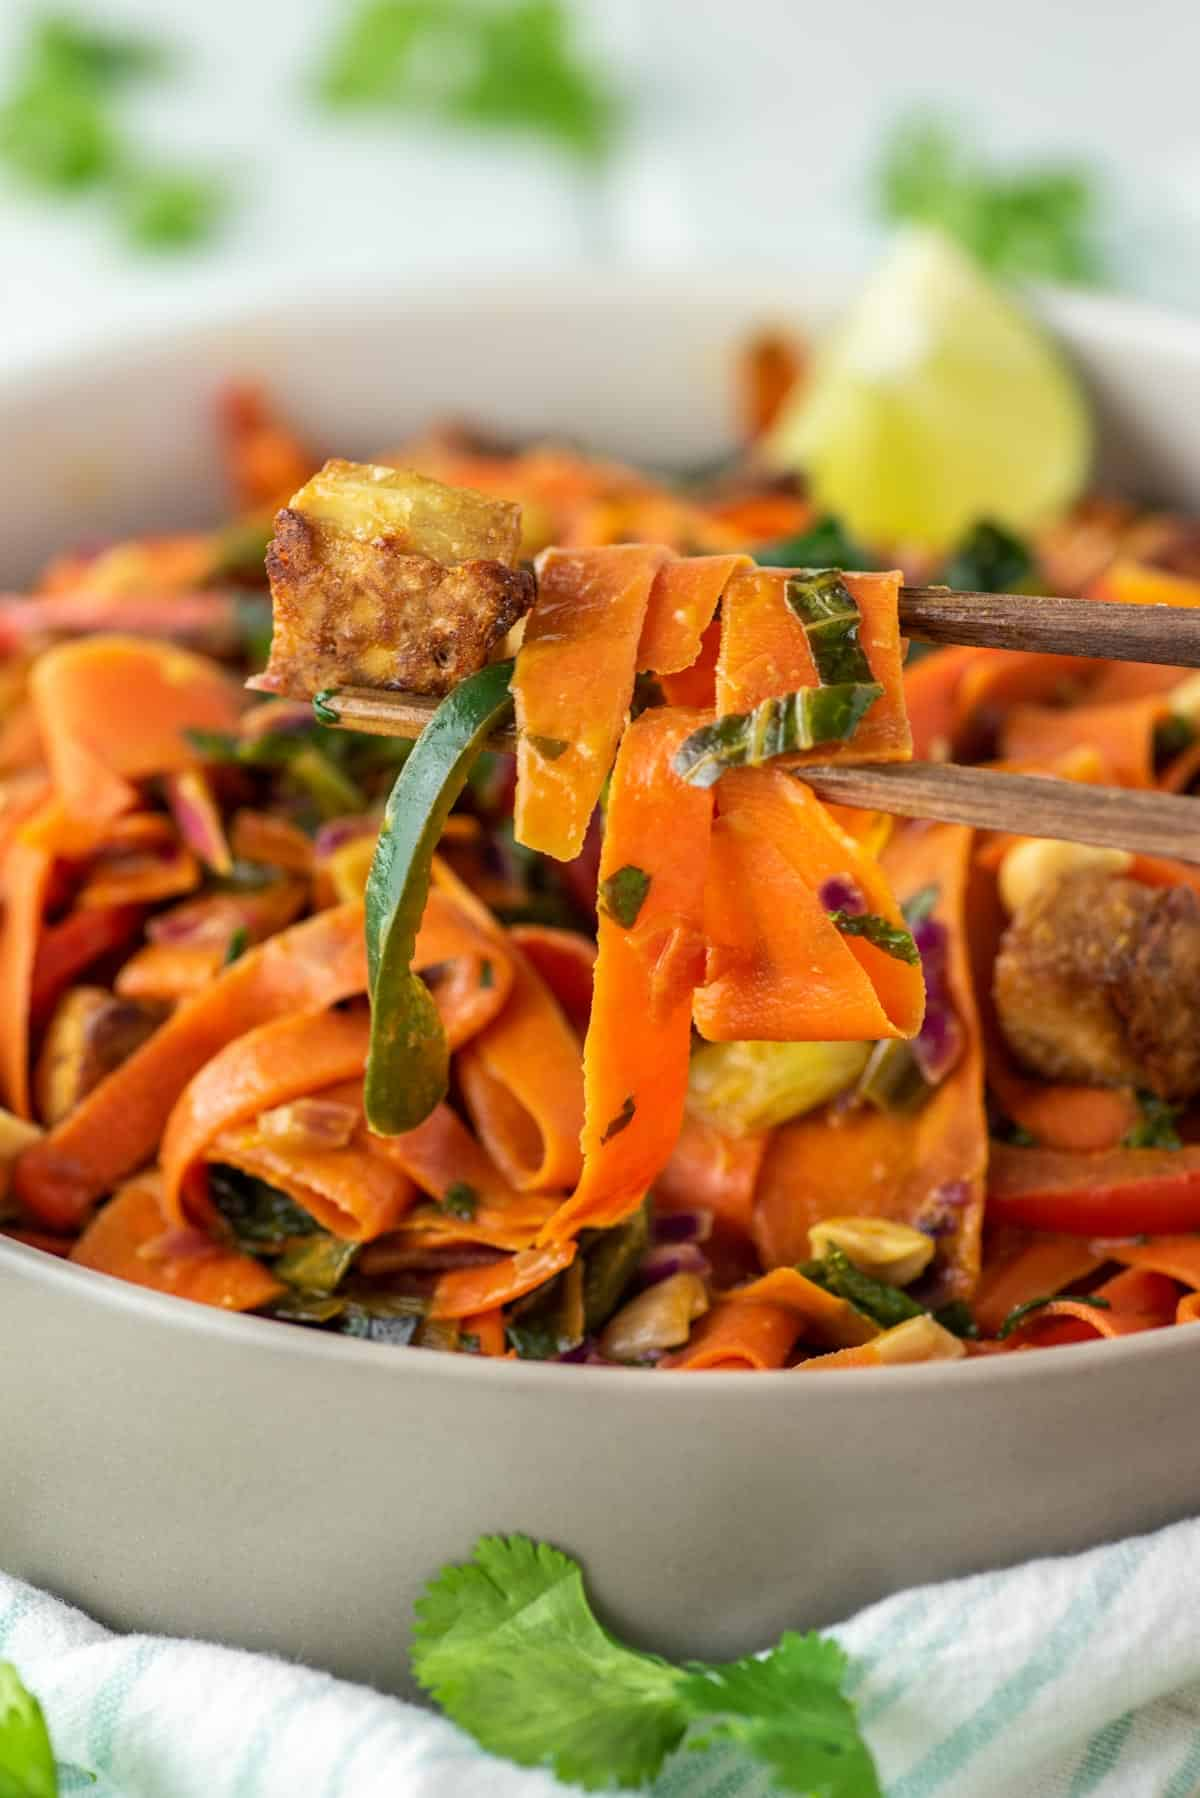 wooden chopsticks lifting out carrot noodles with tofu